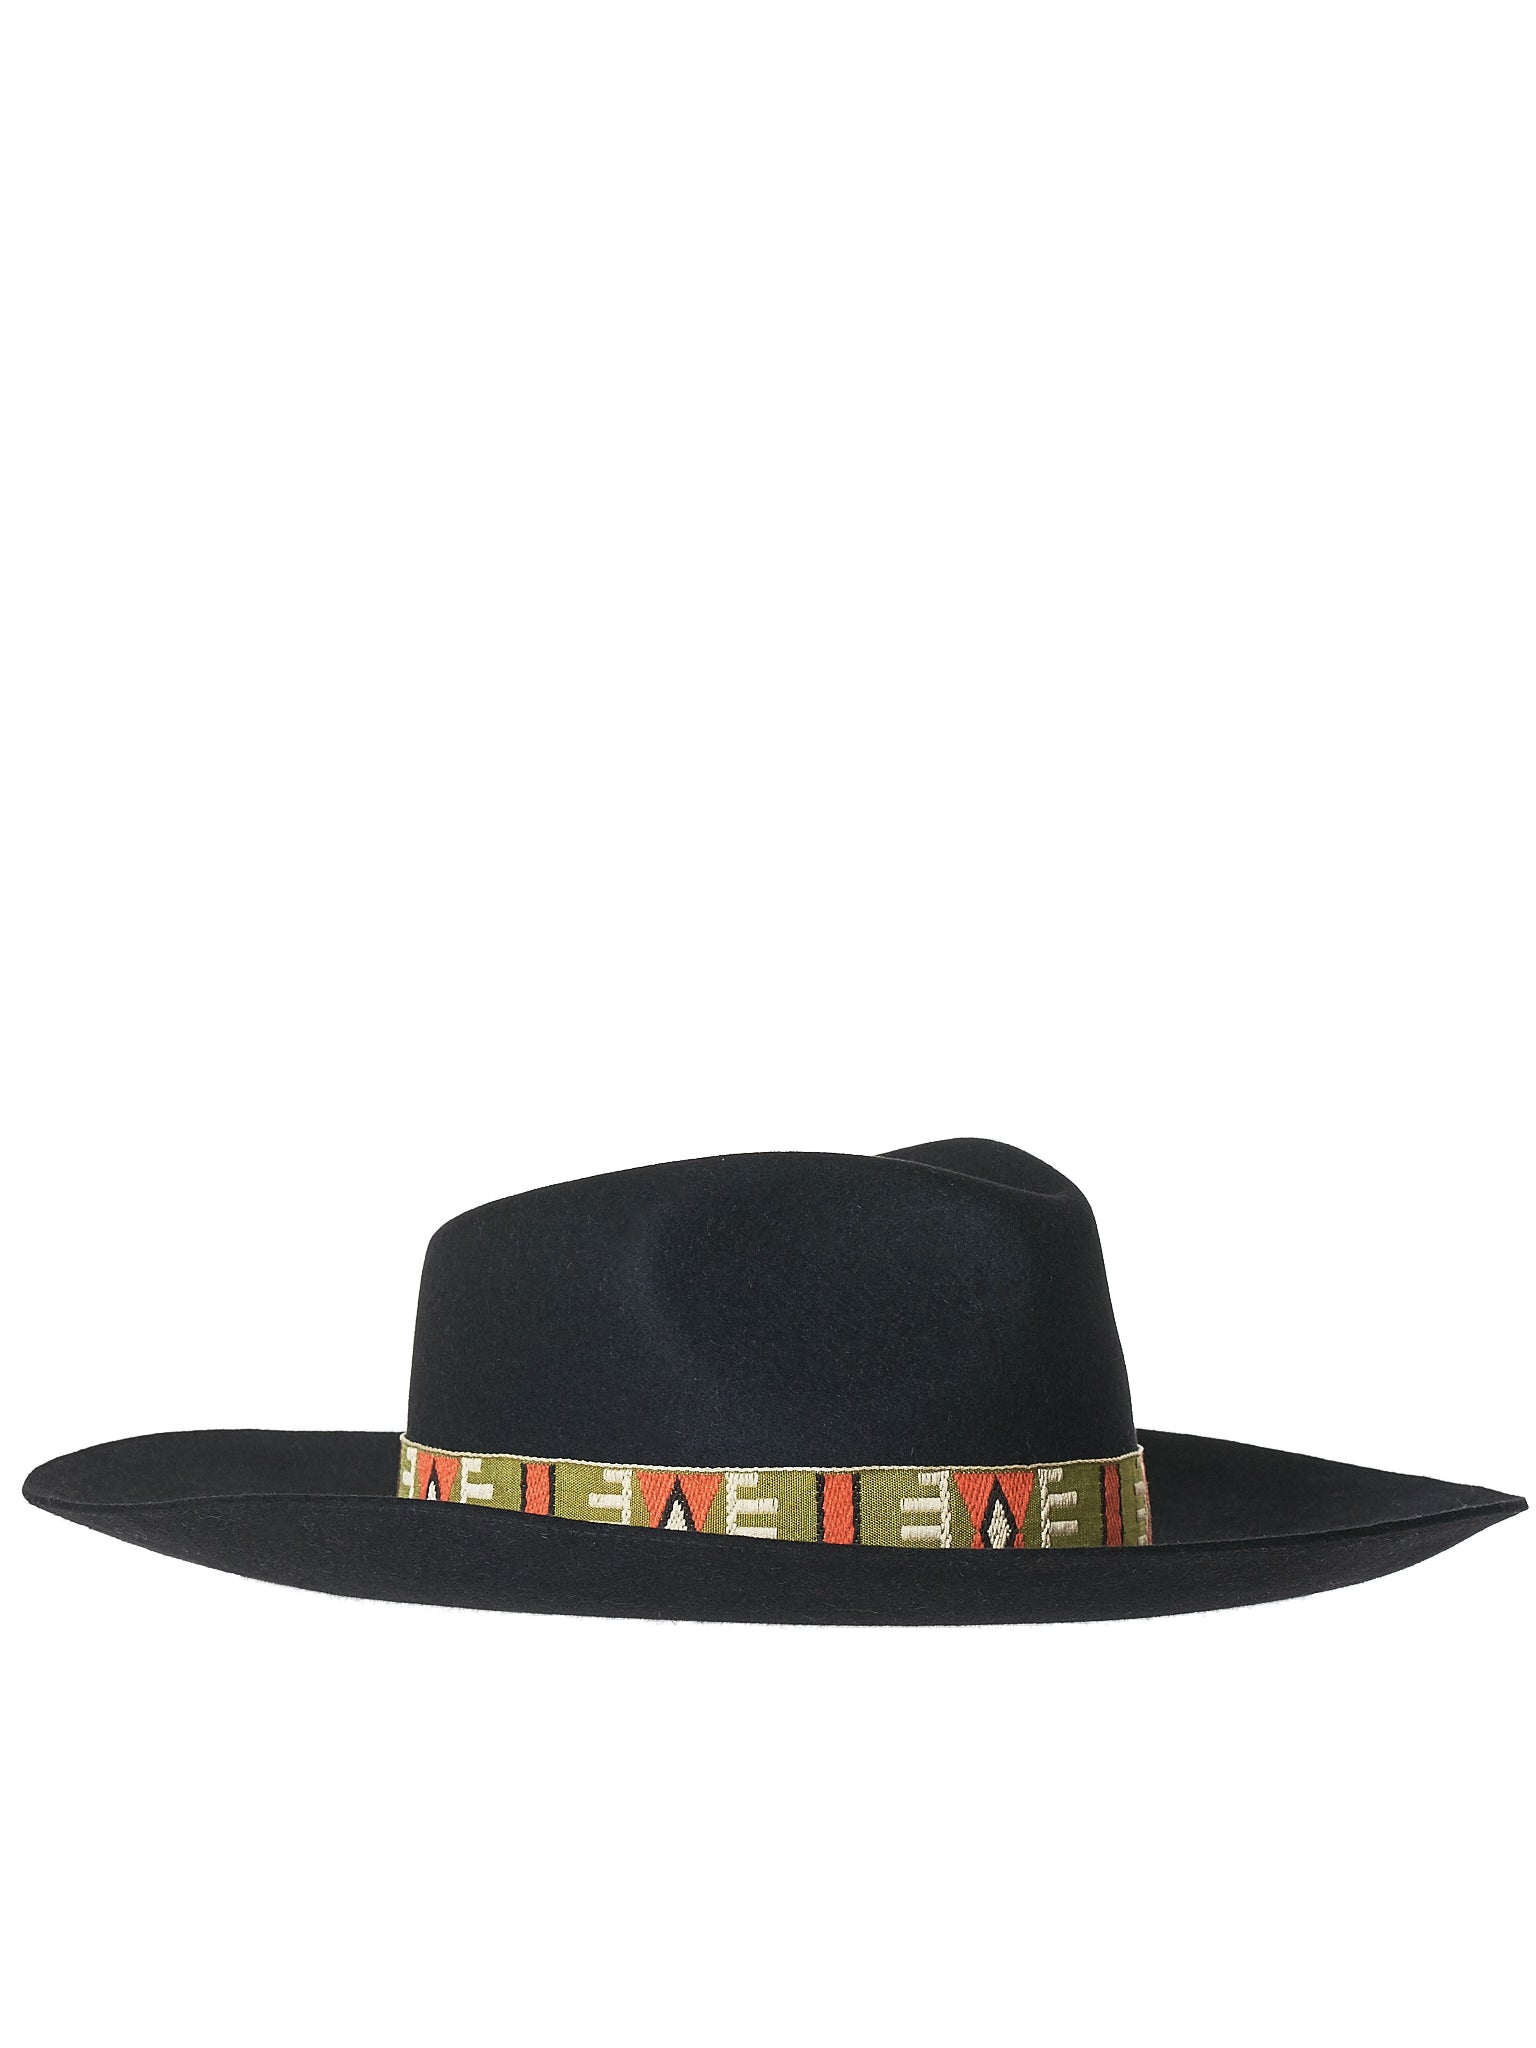 Creased Felt Hat (NATIV-FELT-BLACK)